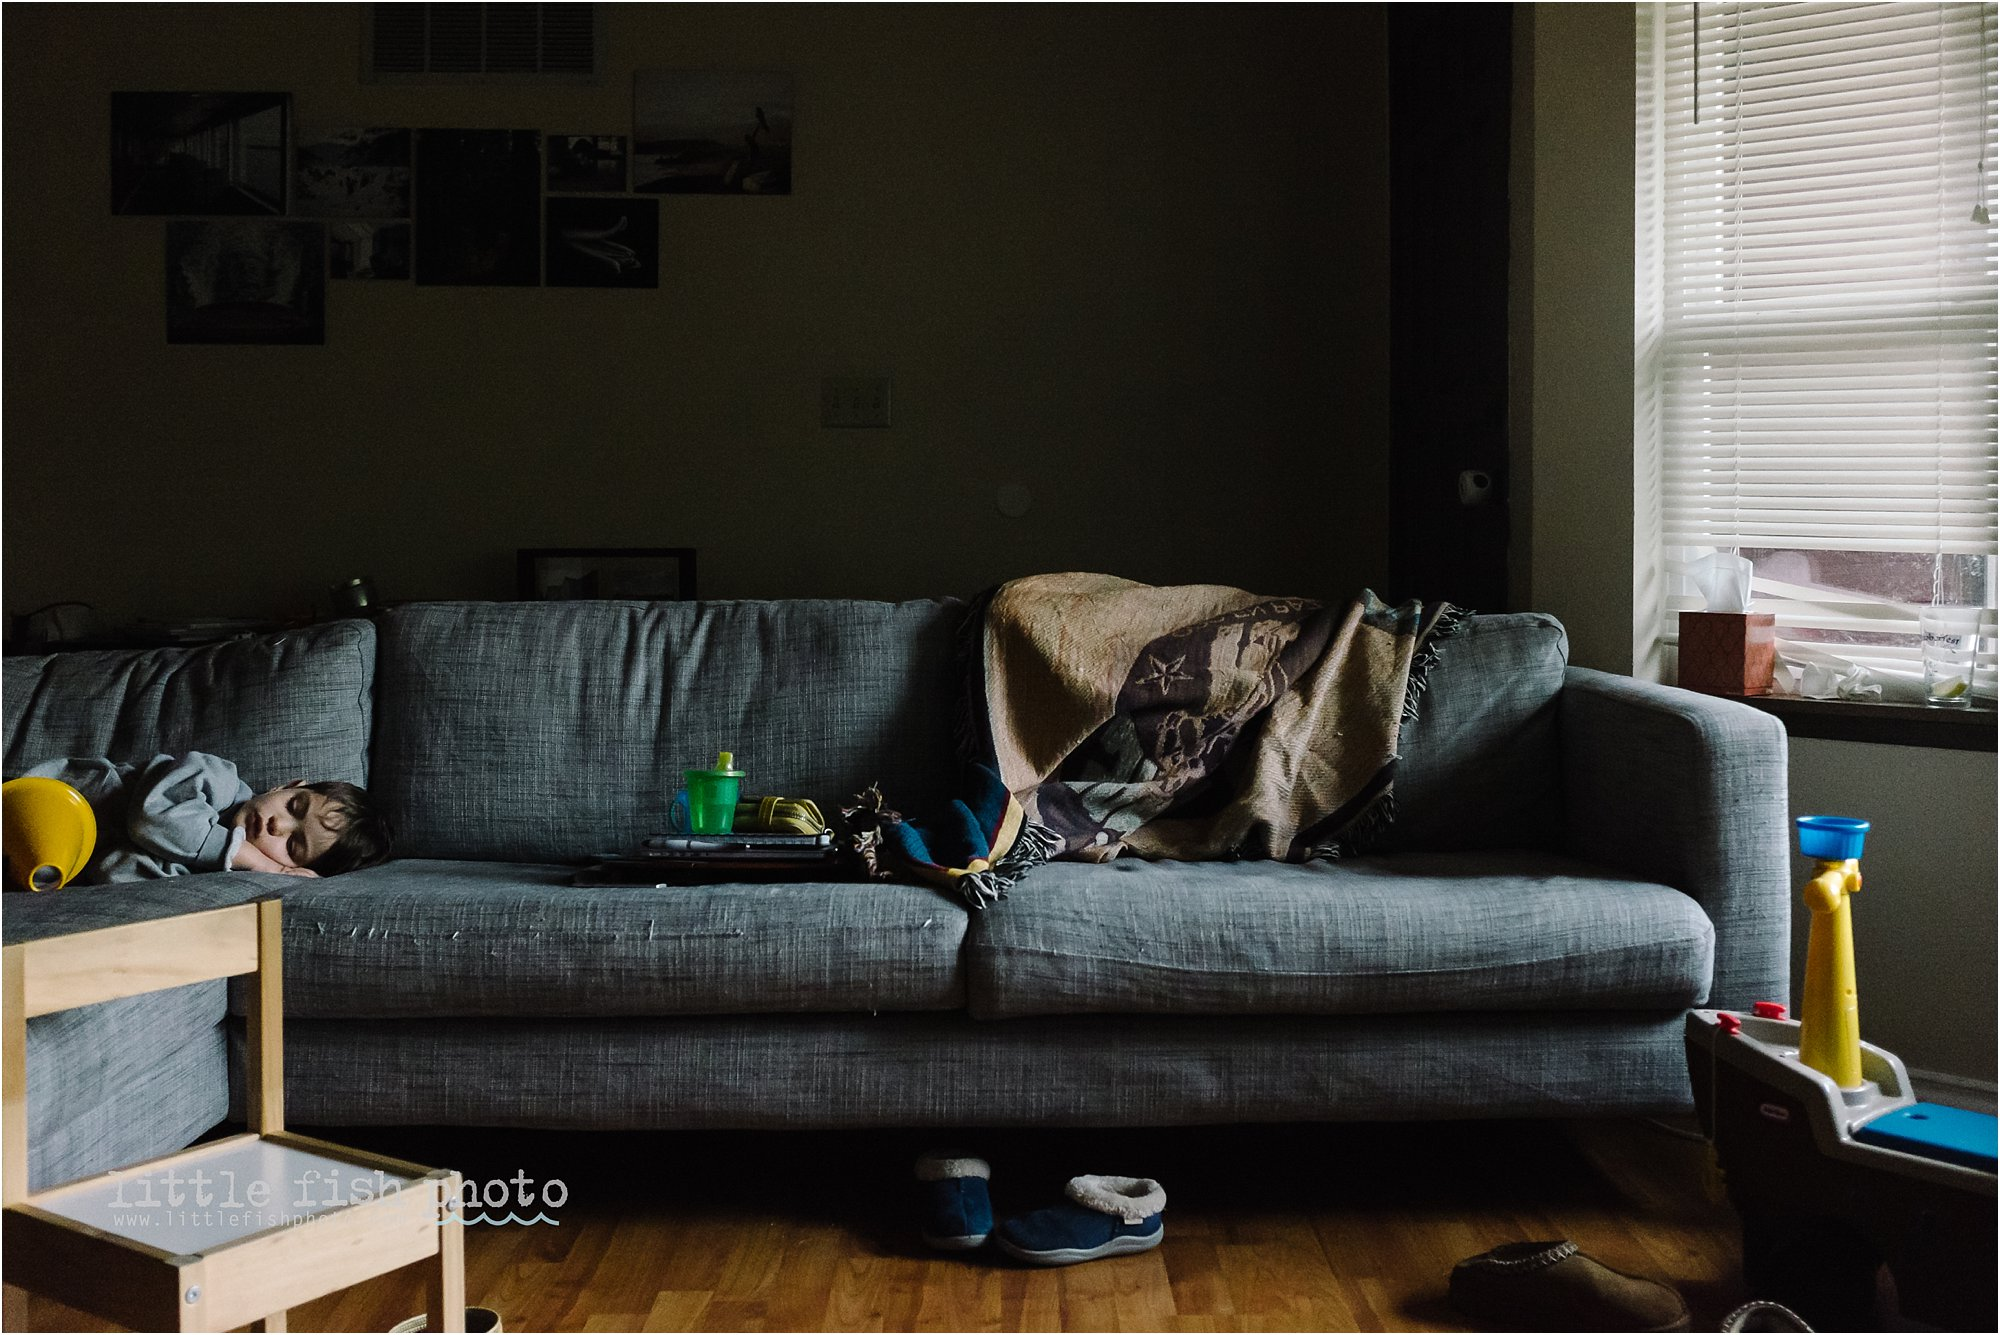 Boy Asleep On Cluttered Couch   Documentary Family Photography